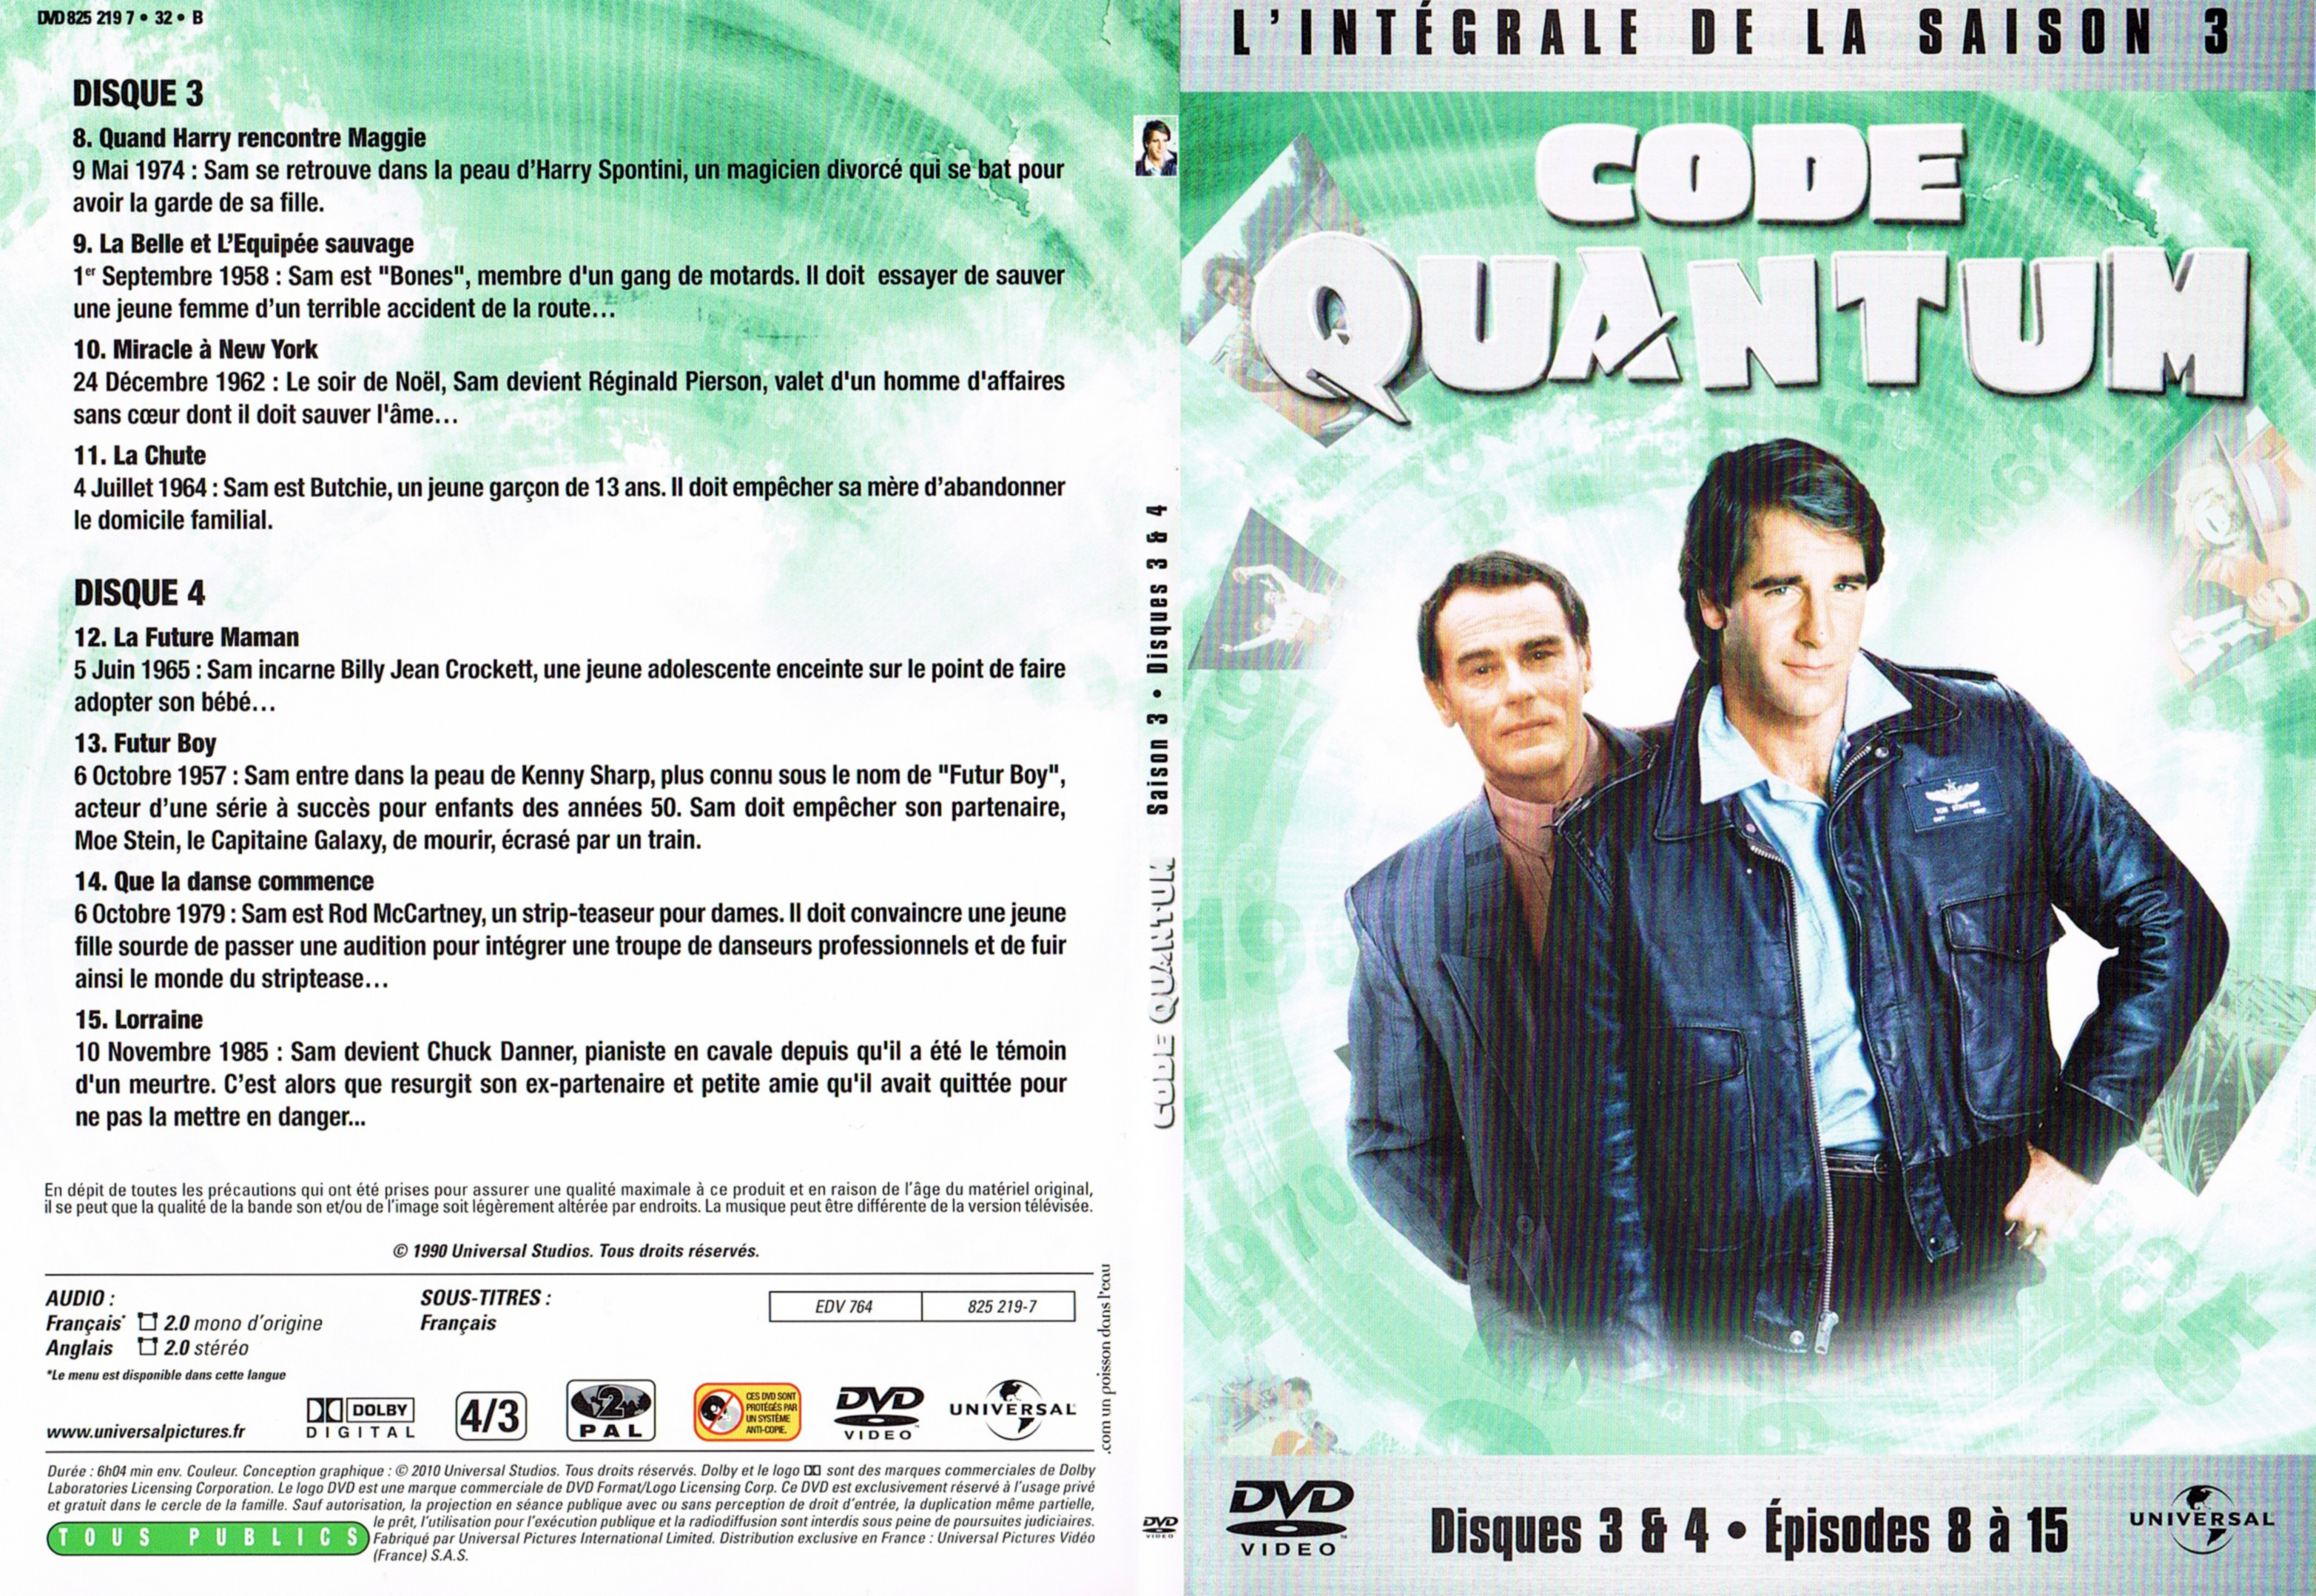 Jaquette slim dvd for Quantization table design revisited for image video coding